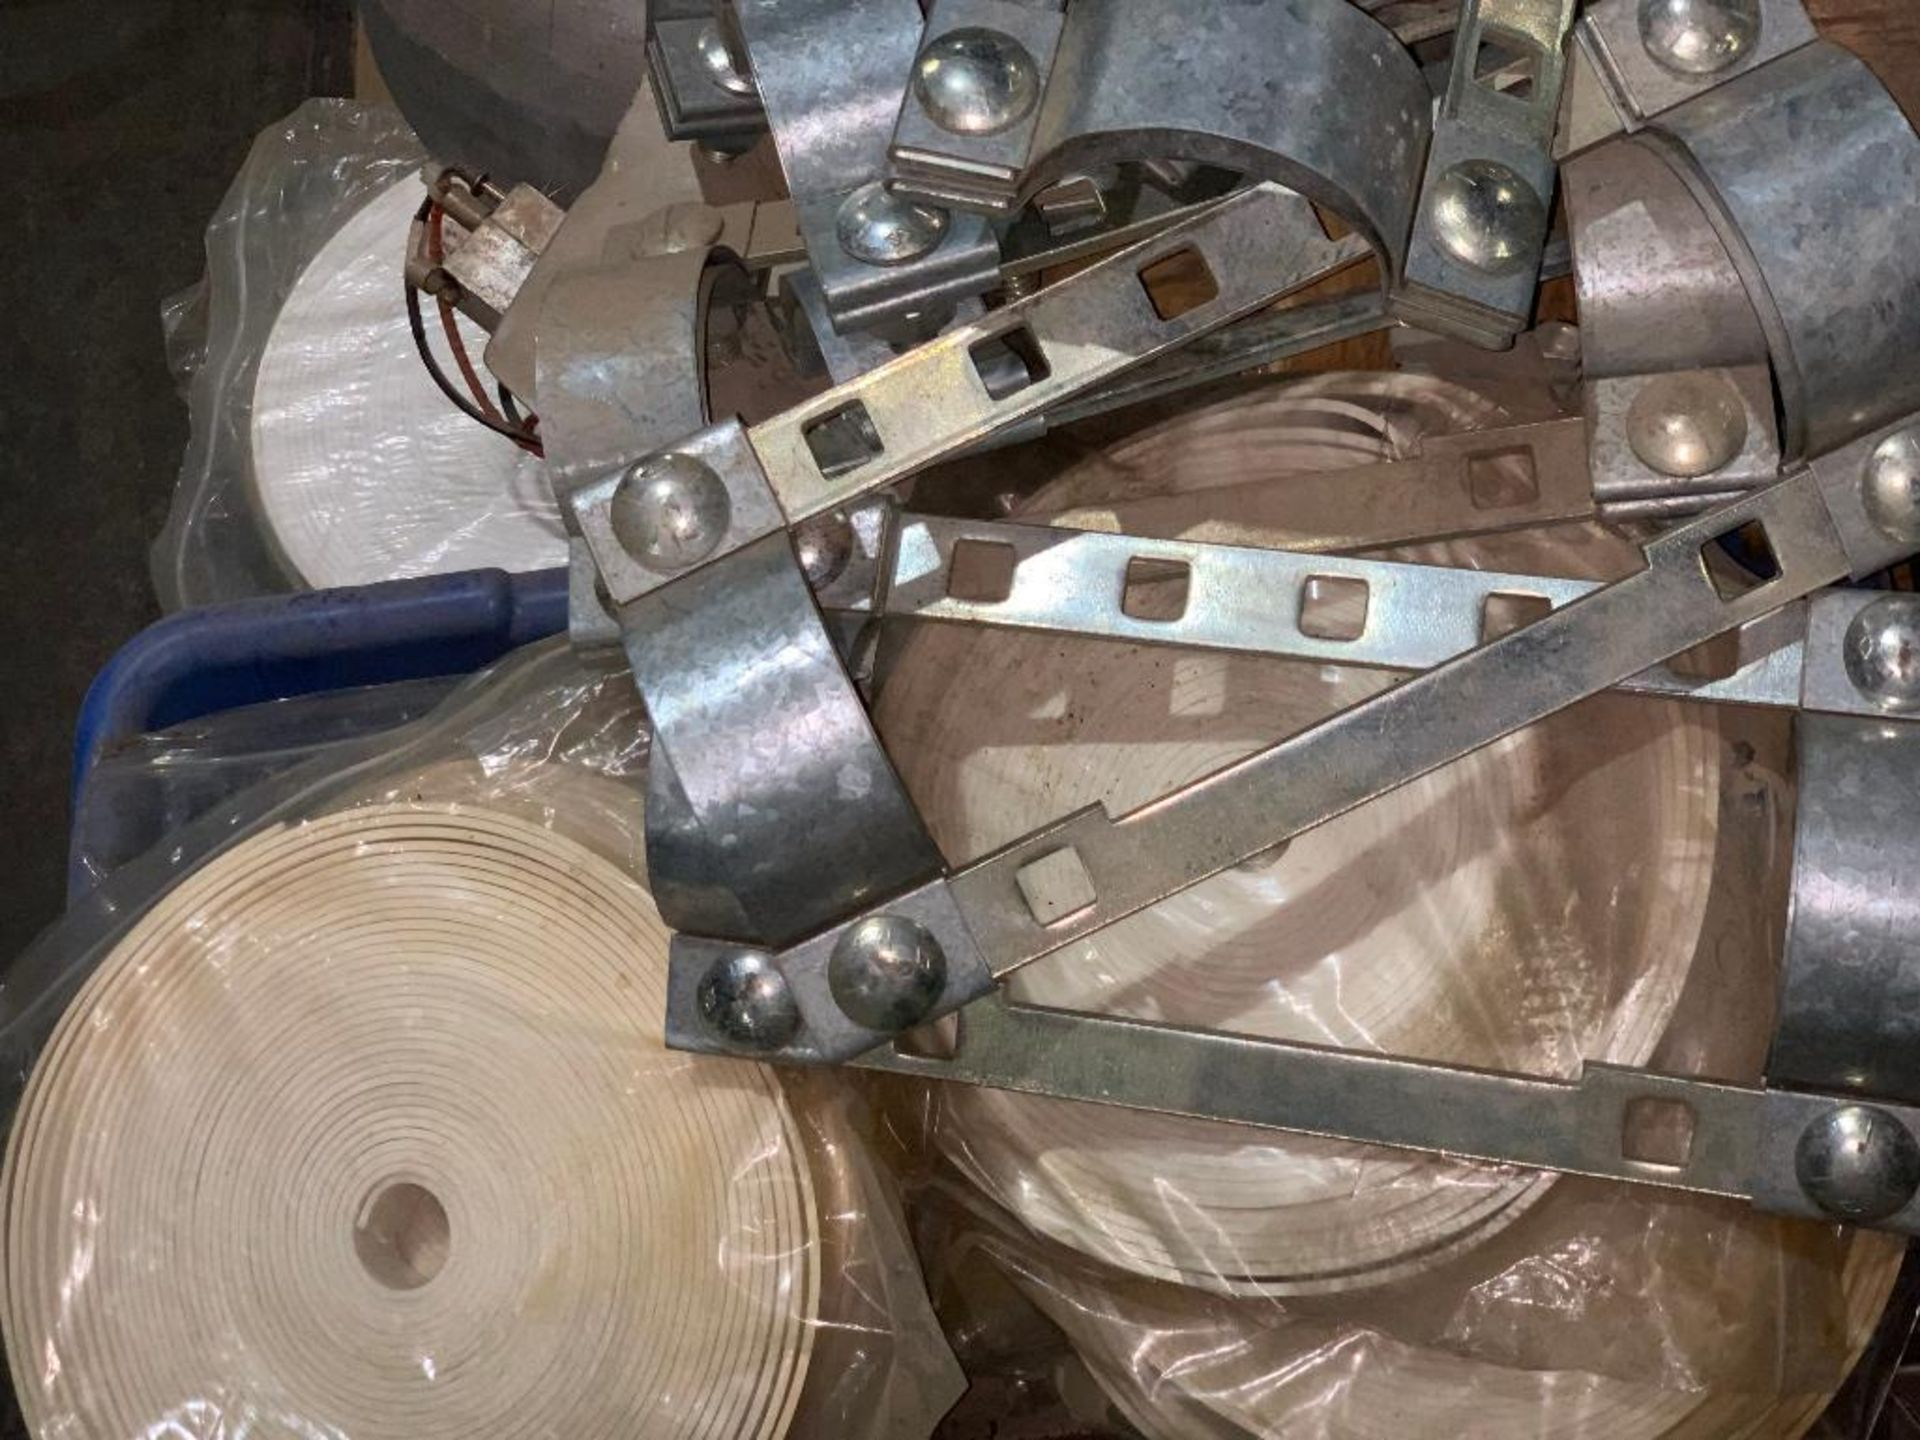 pallet of air pipe clamps - Image 5 of 6